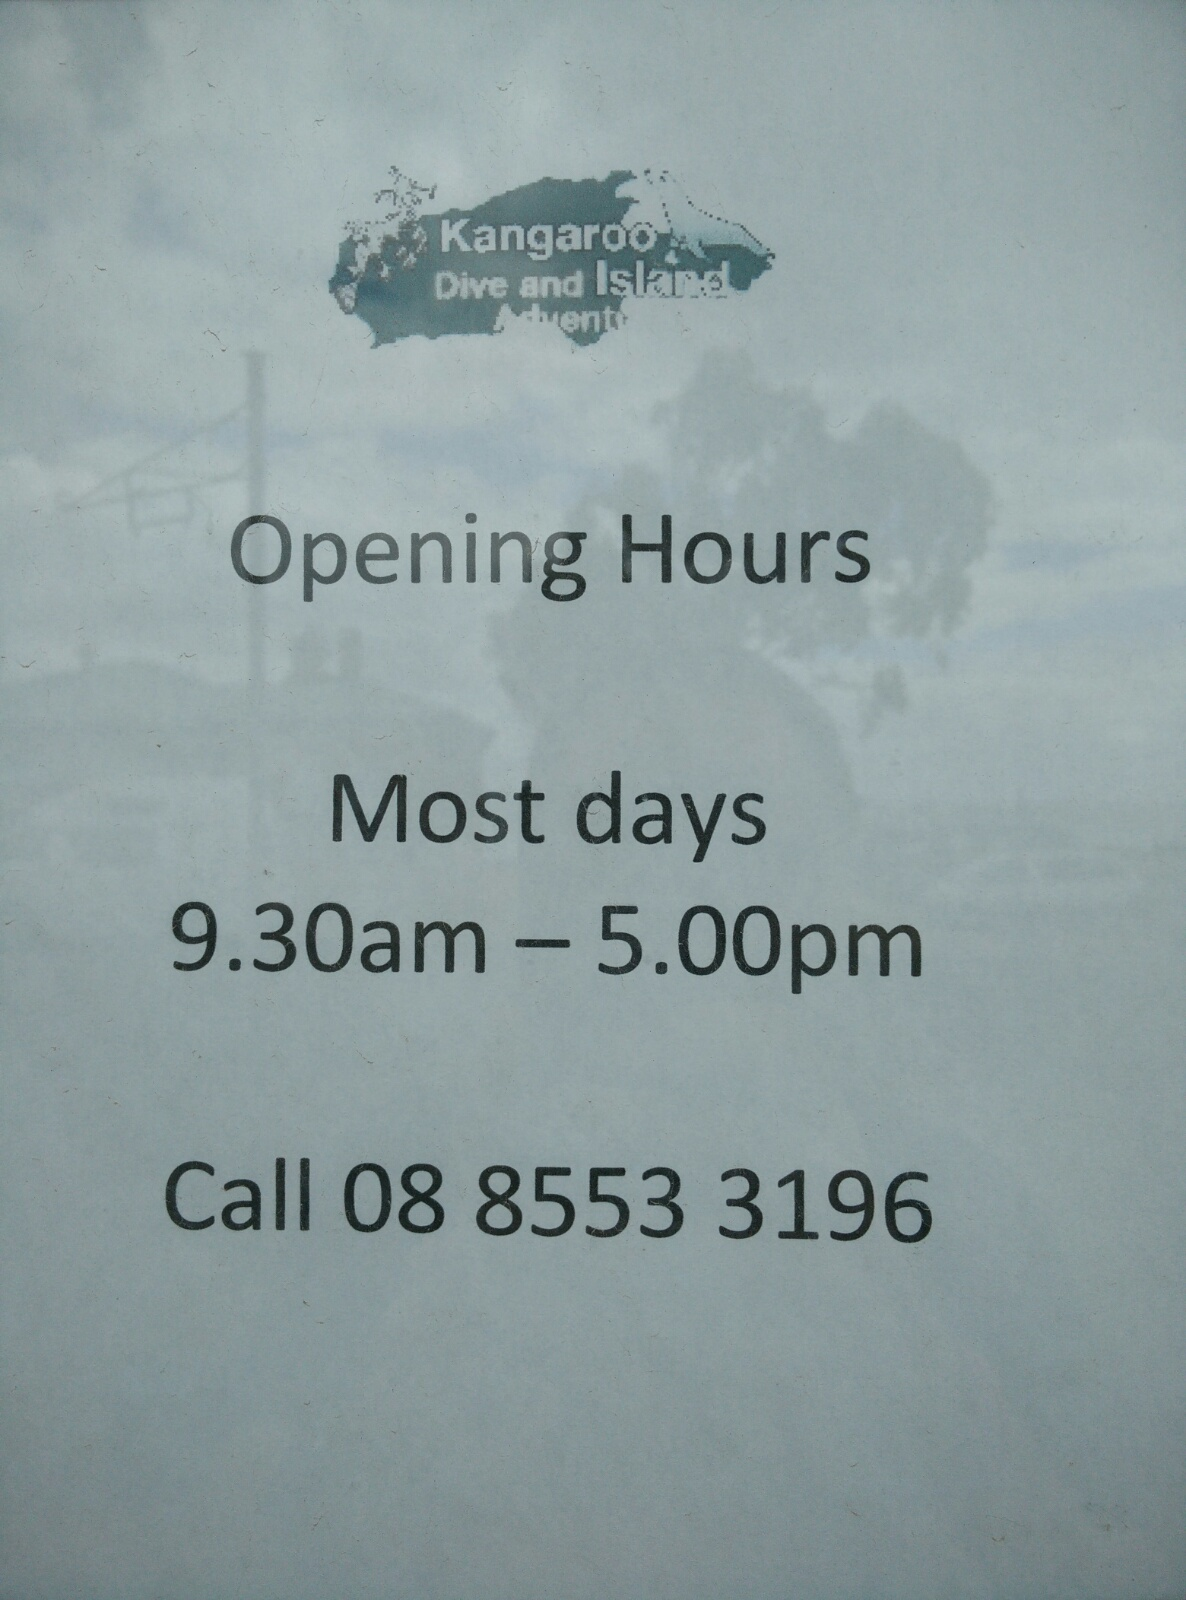 Open most days